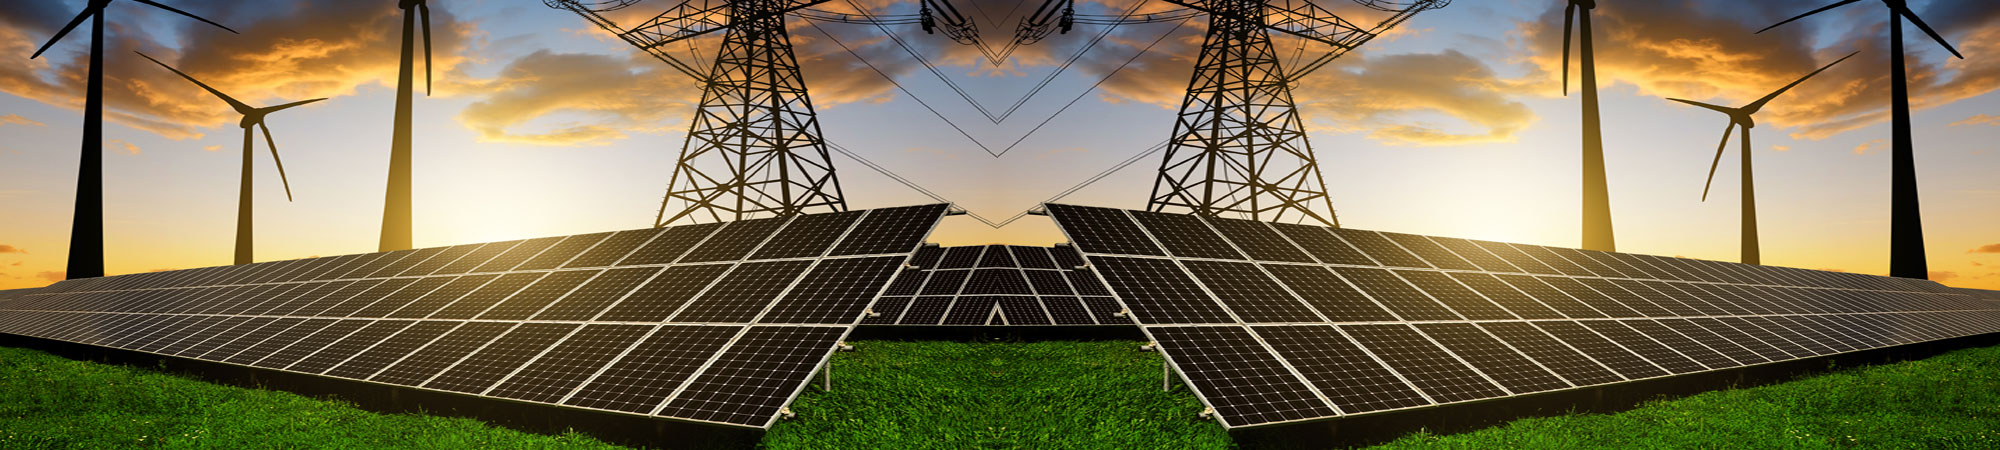 Photo of Power Lines, Wind Turbines, and Solar Panels